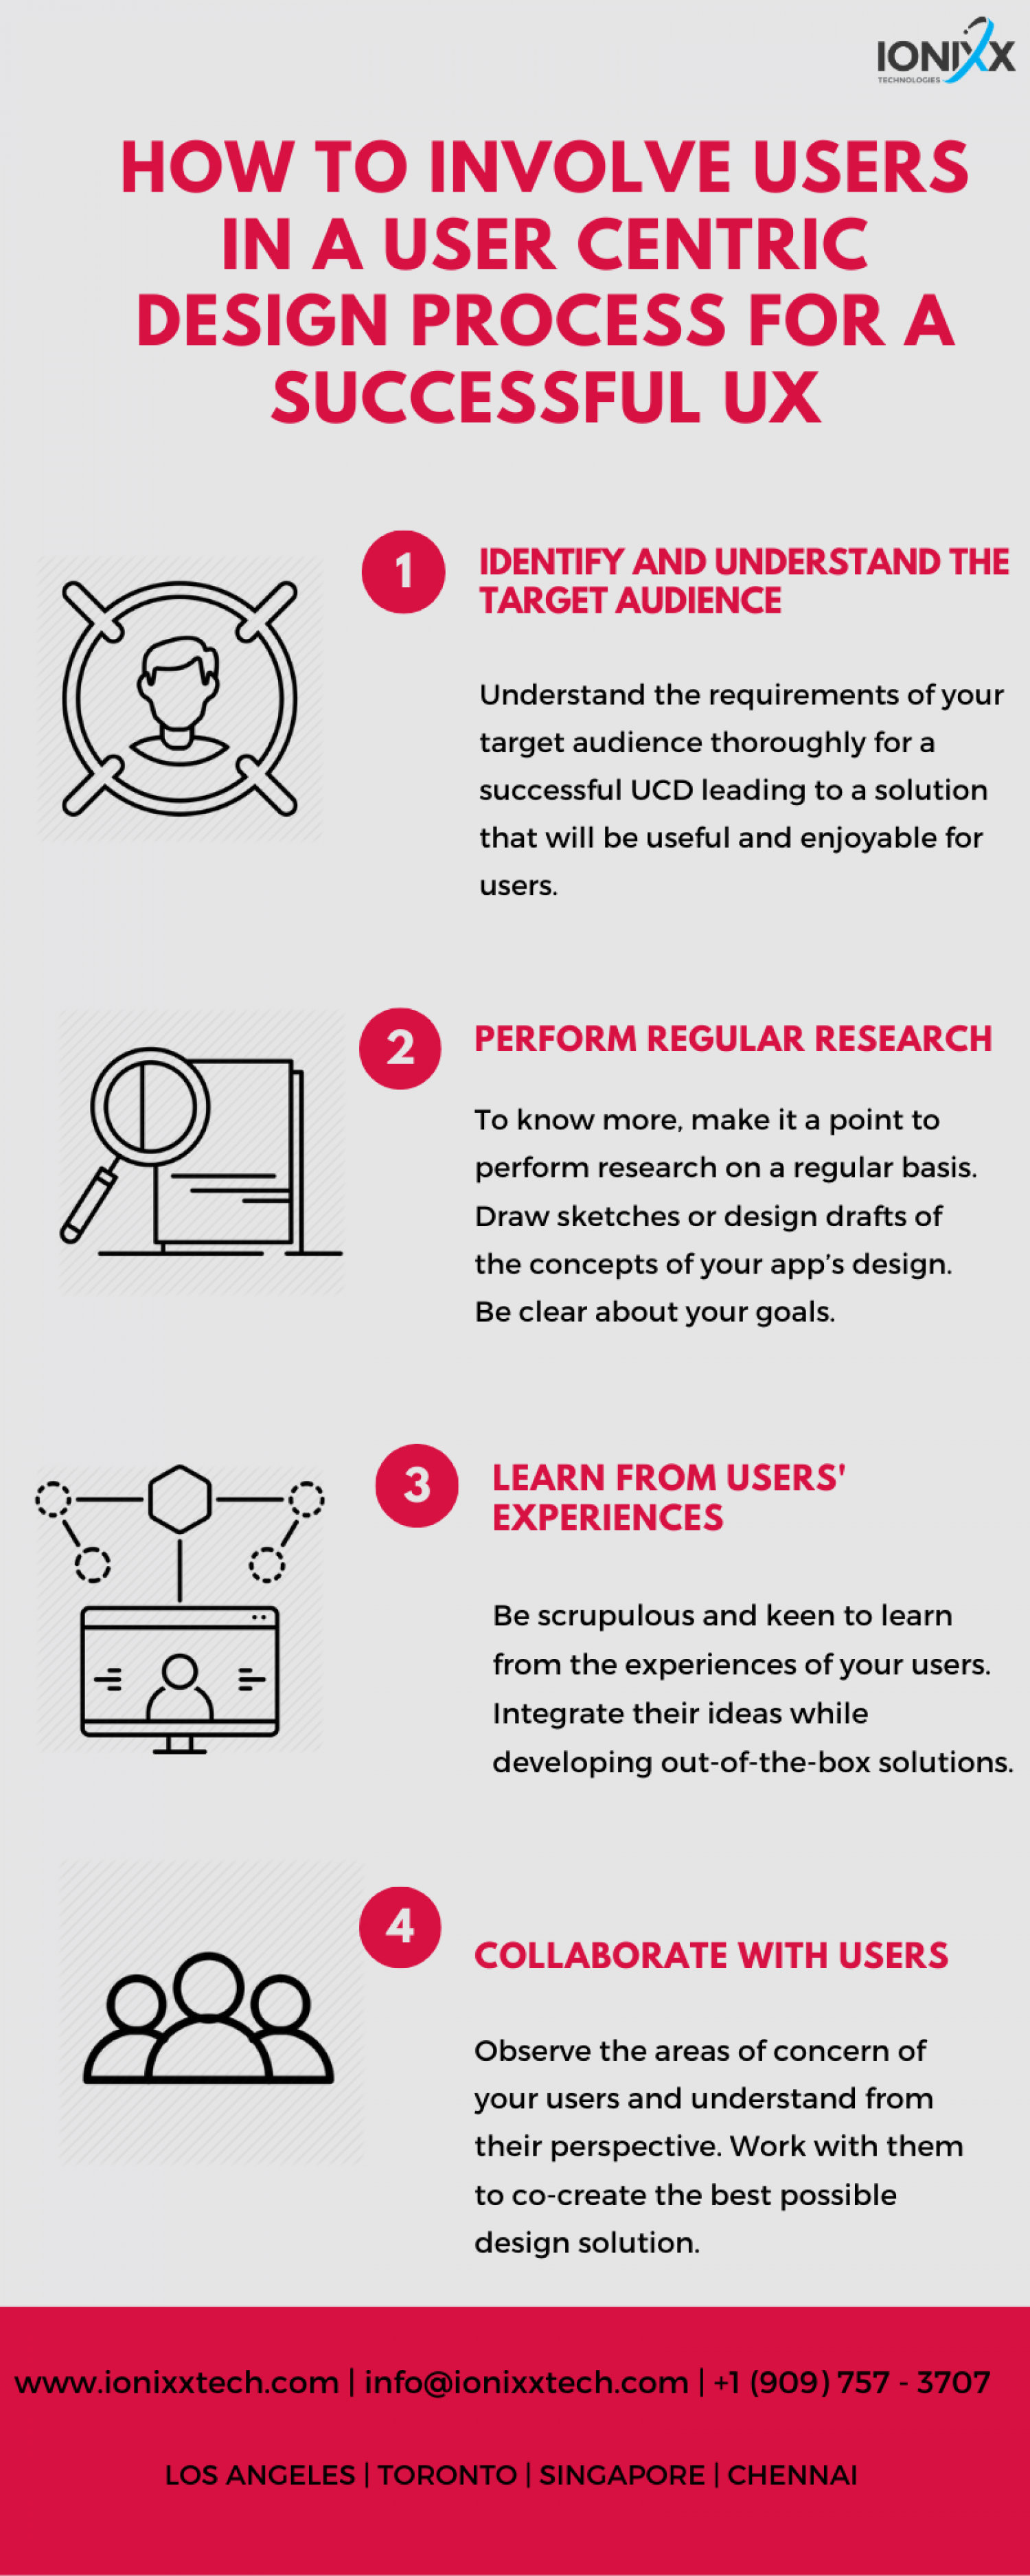 HOW TO INVOLVE USERS IN A  USER CENTRIC DESIGN PROCESS  FOR A SUCCESSFUL UX Infographic